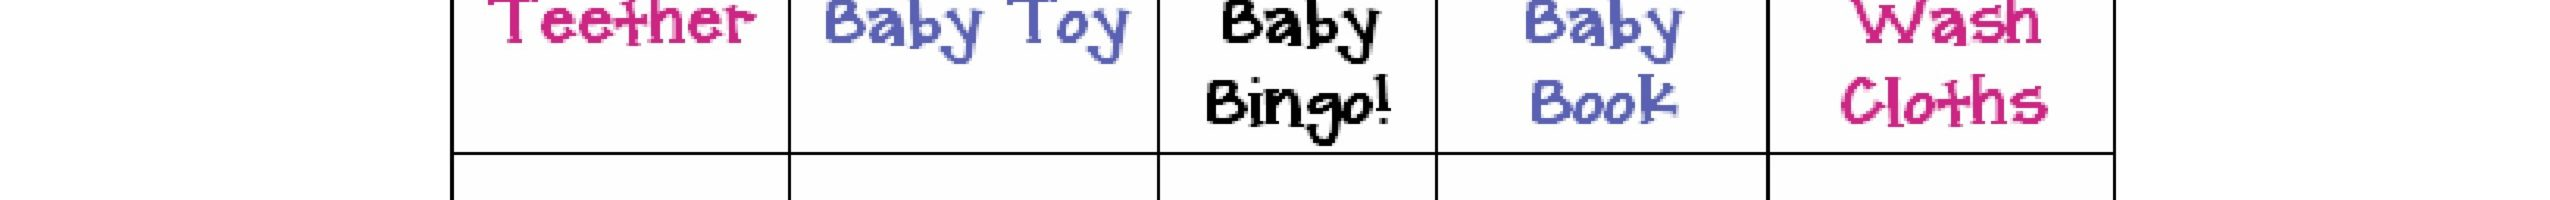 Printable Baby Shower Gifts Bingo